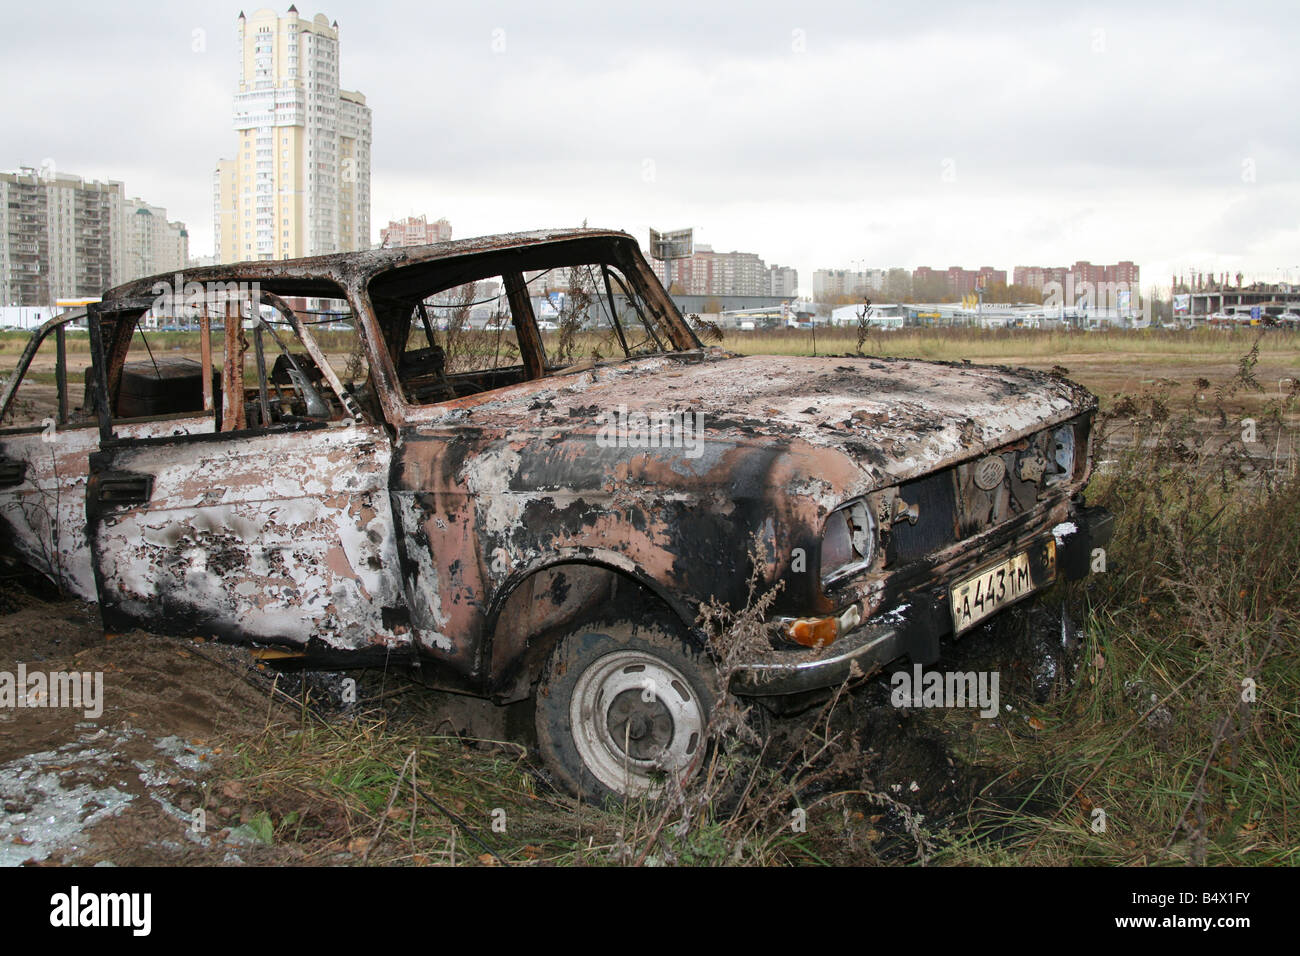 Old Rusty Car Stock Photos & Old Rusty Car Stock Images - Alamy